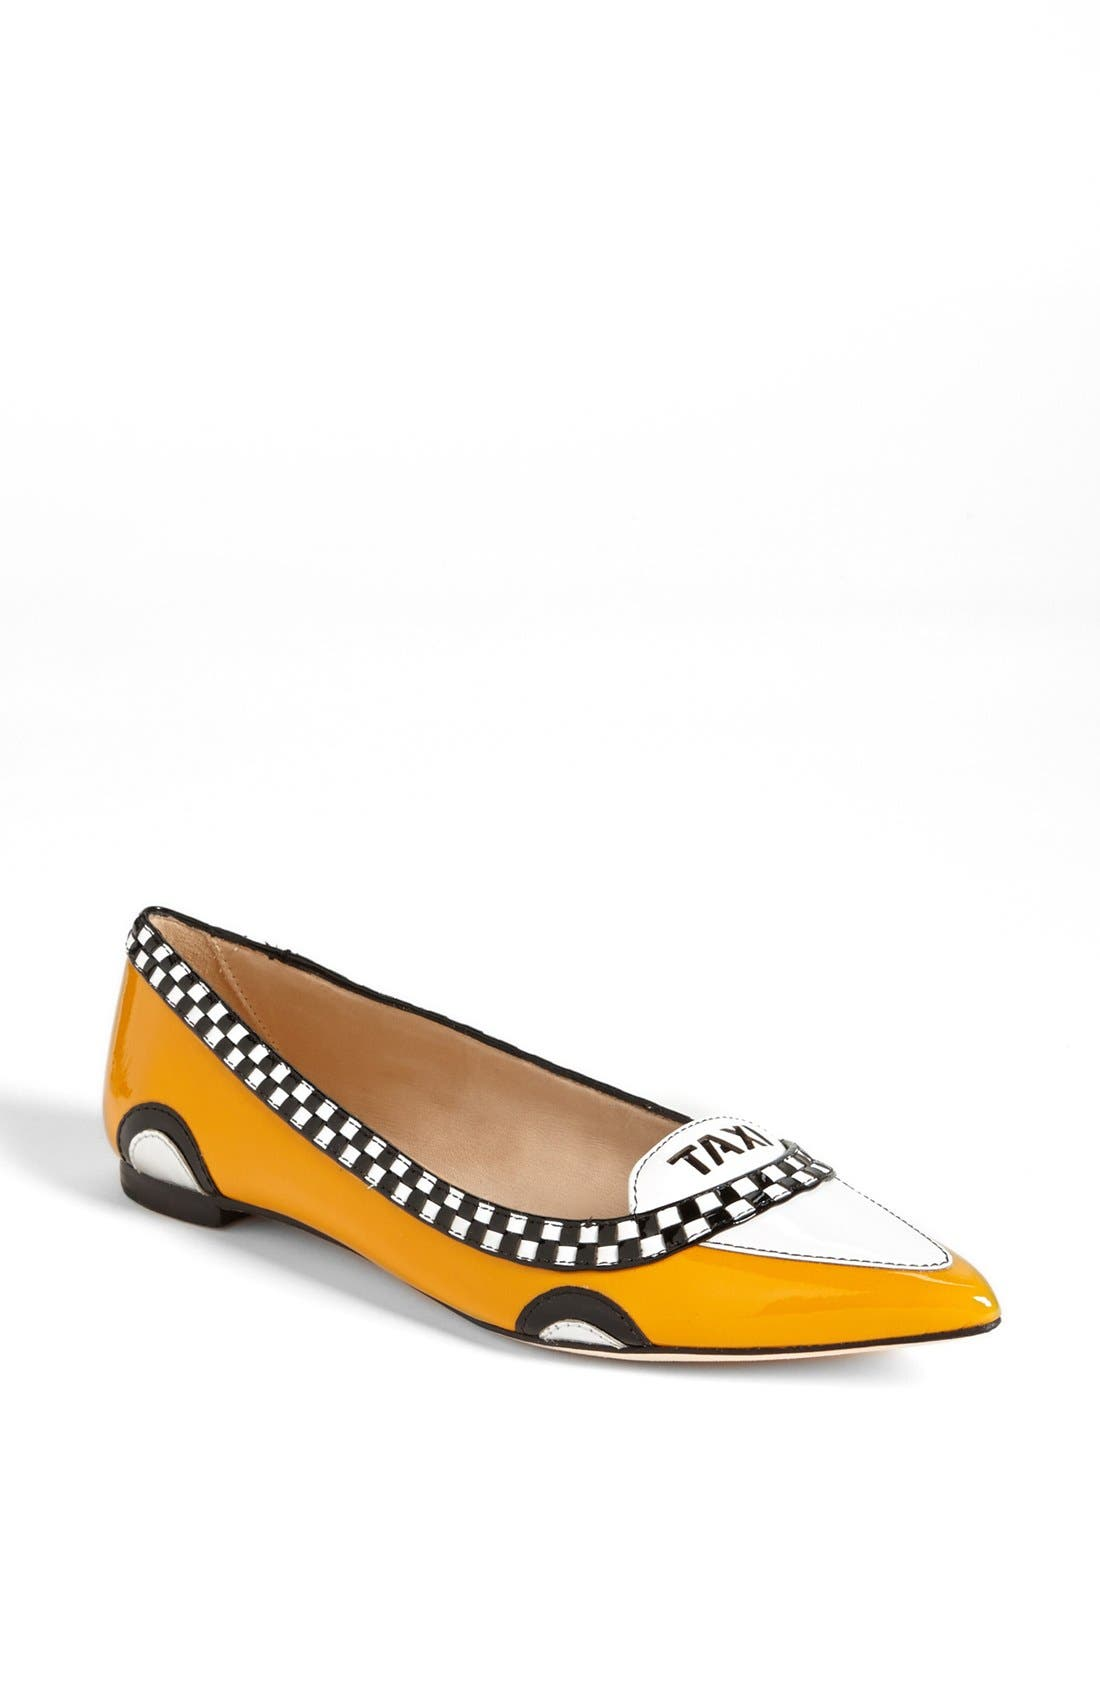 Main Image - kate spade new york 'go' flat